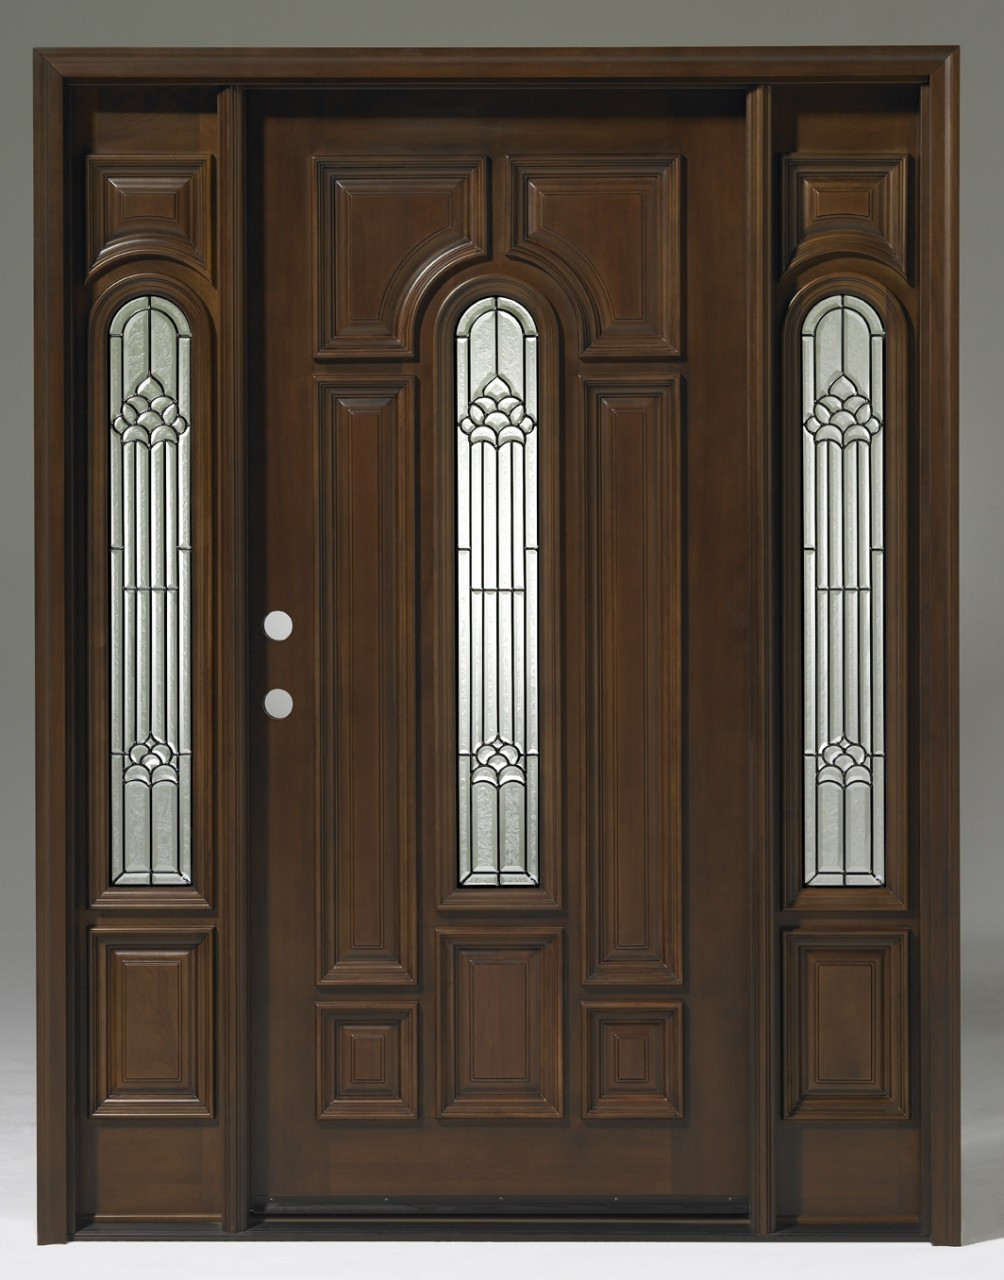 Discount door center prehung and prefinished teak center for Entry doors with sidelights